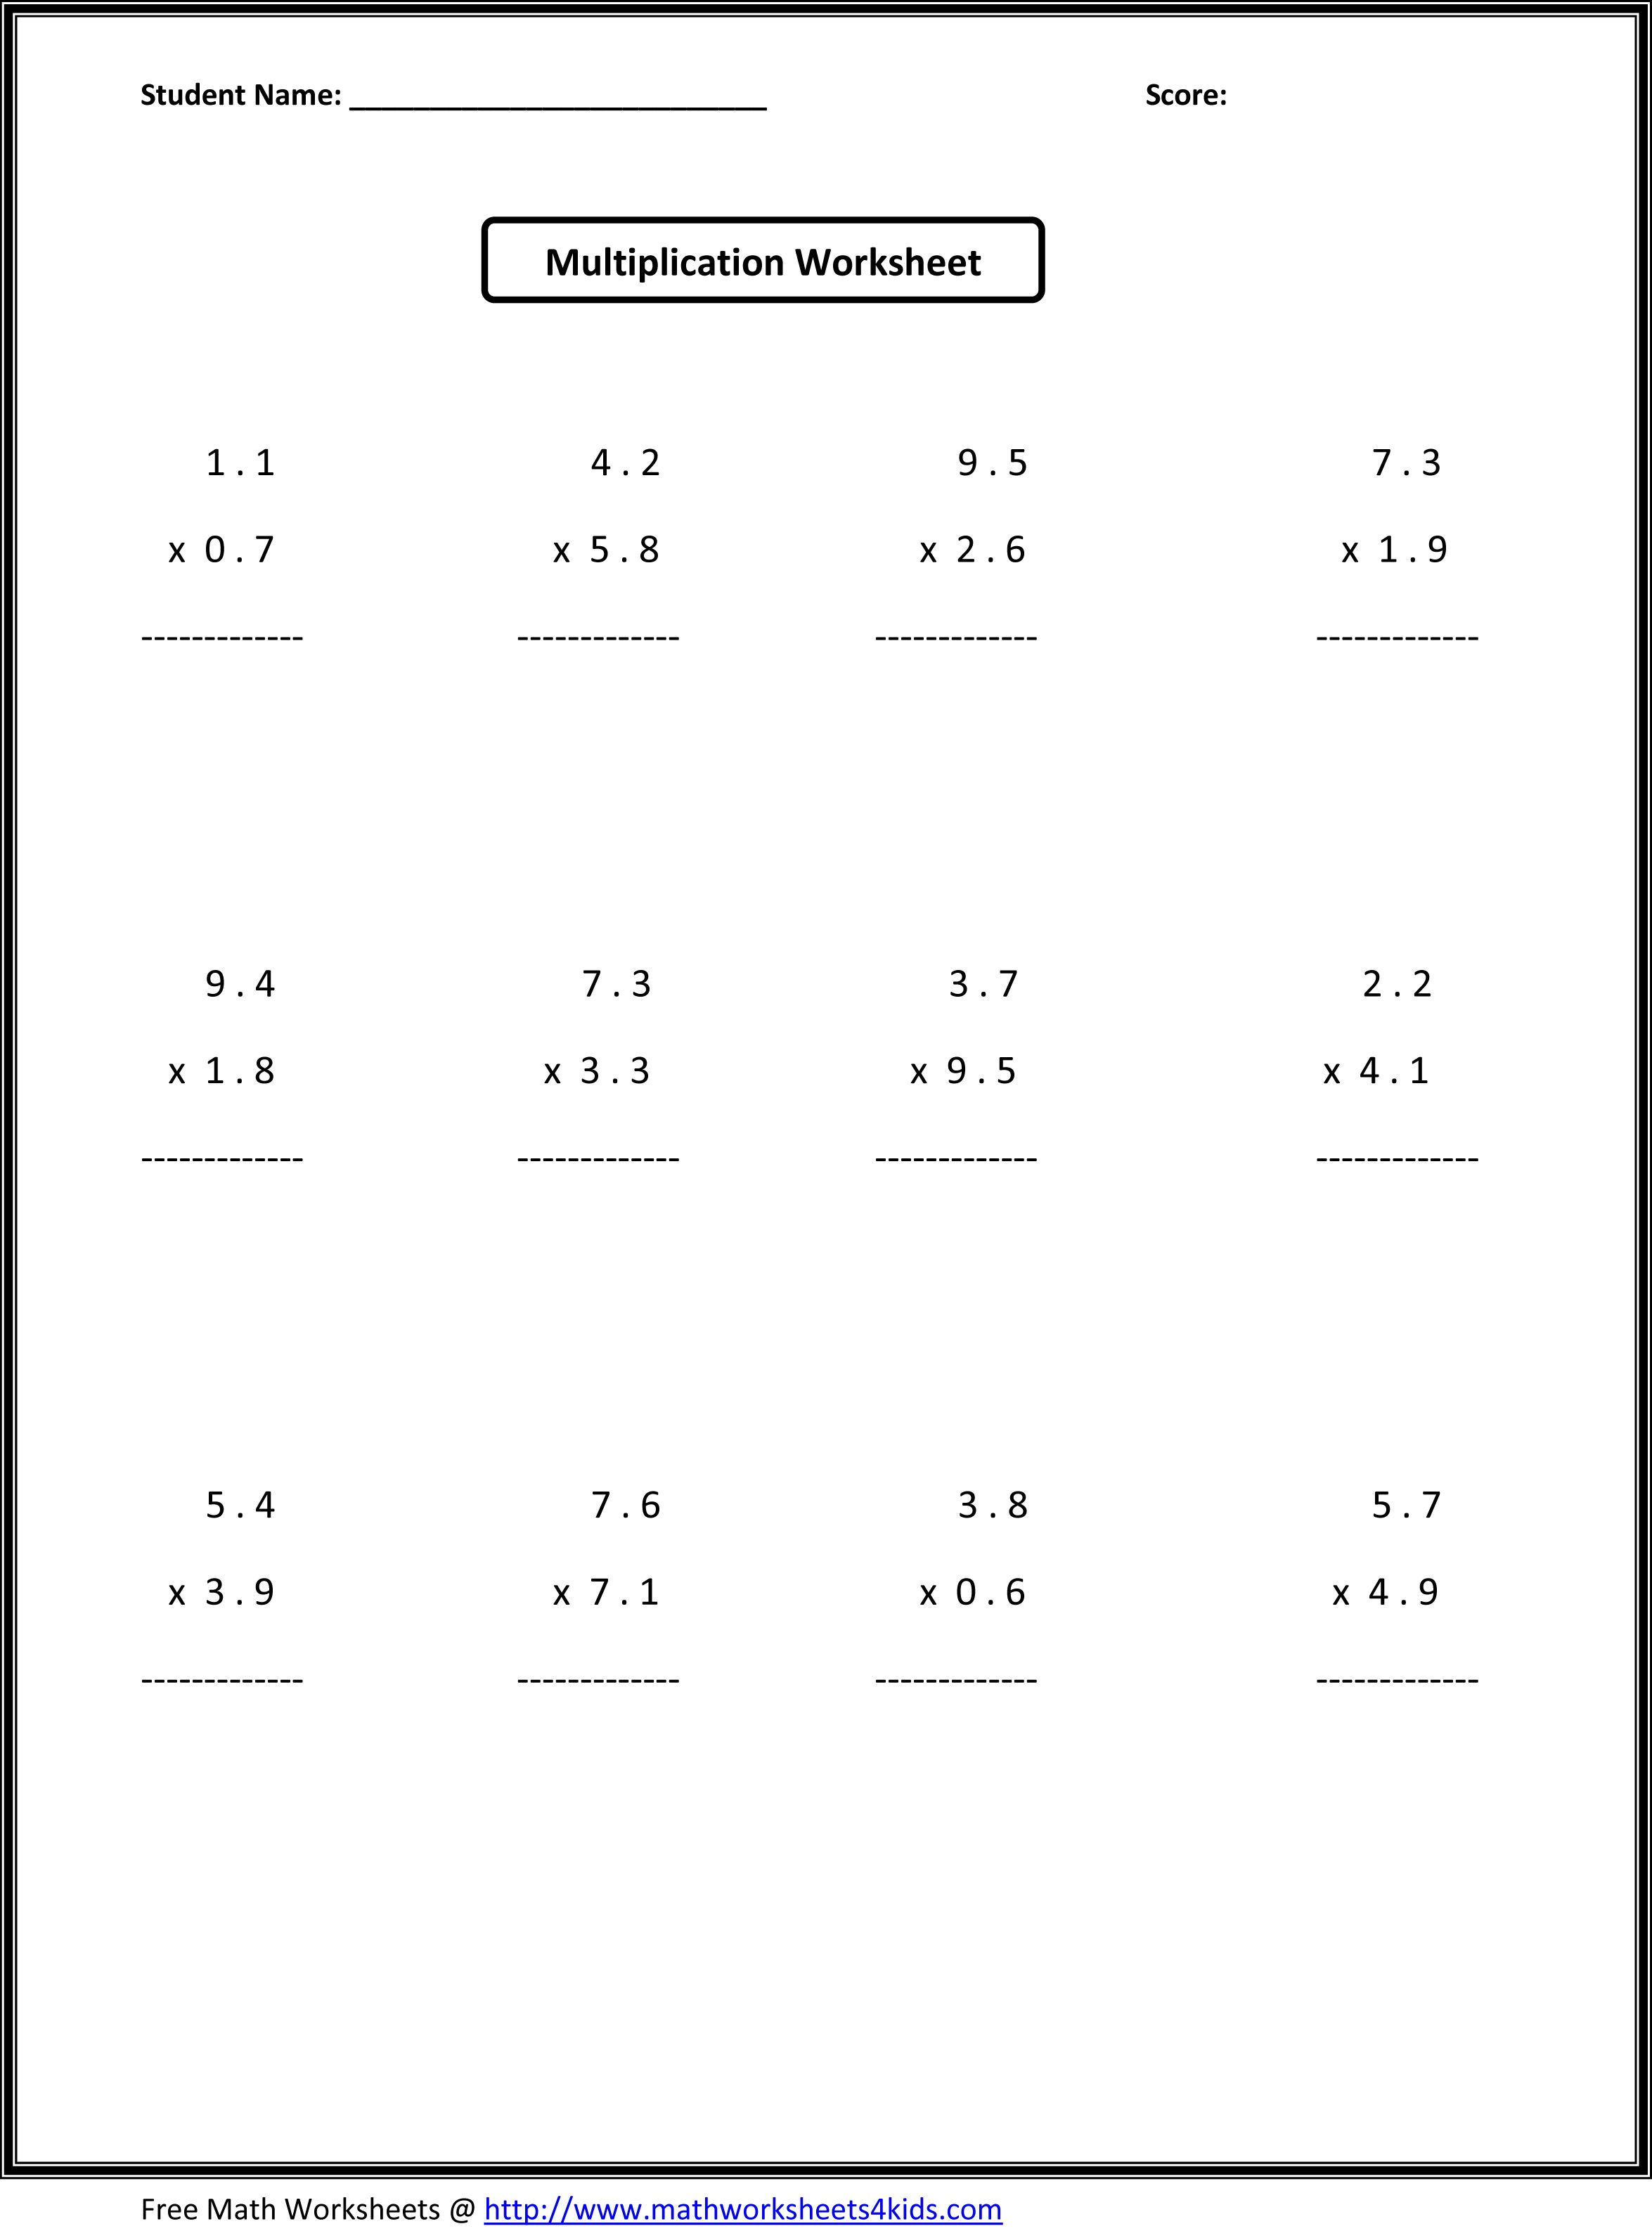 Uncategorized Basic Math Worksheets With Answers 7th grade math worksheets value absolute based on basic math